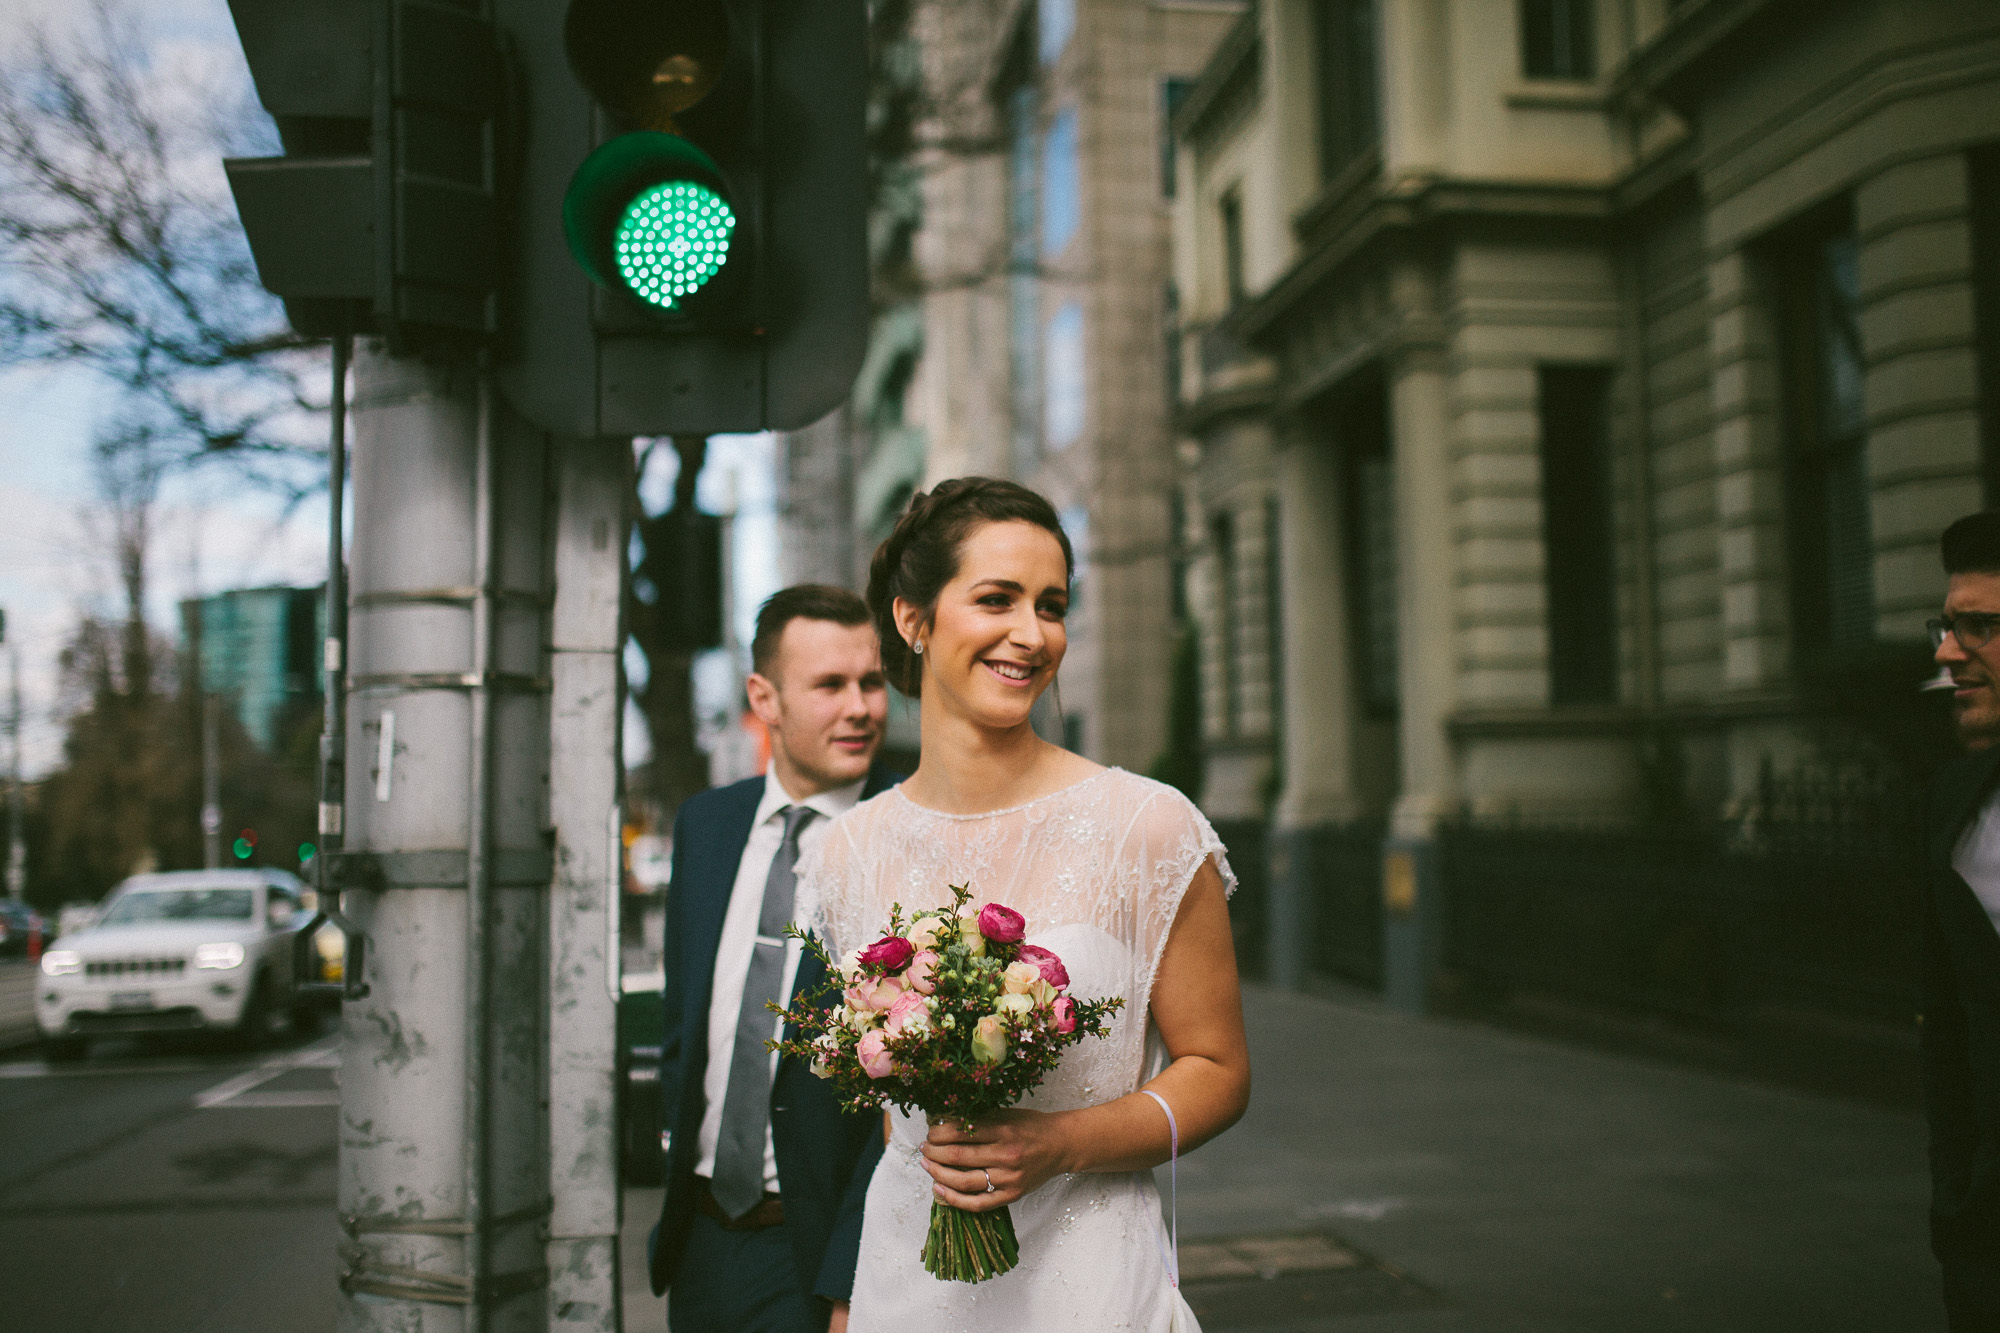 Jason-Charlotte-Melbourne-Quirky-Urban-Alternative-Wedding-Photography-17